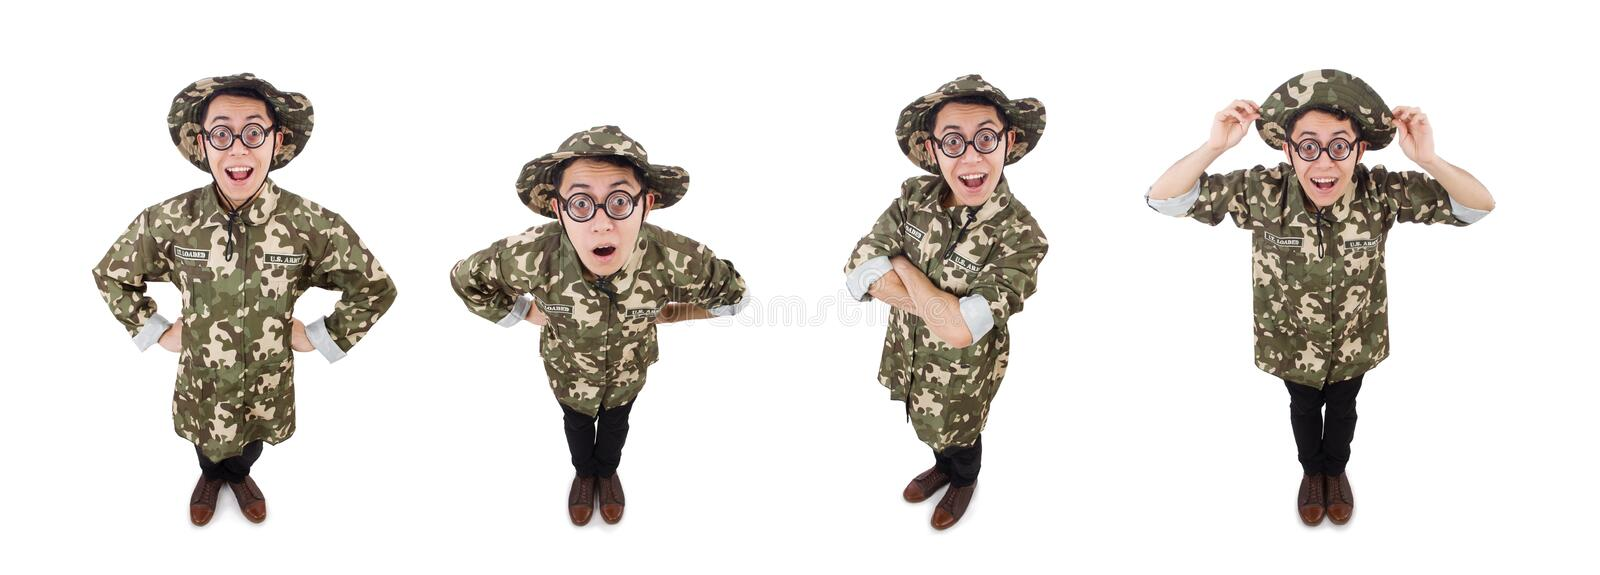 Funny soldier in military concept stock photos